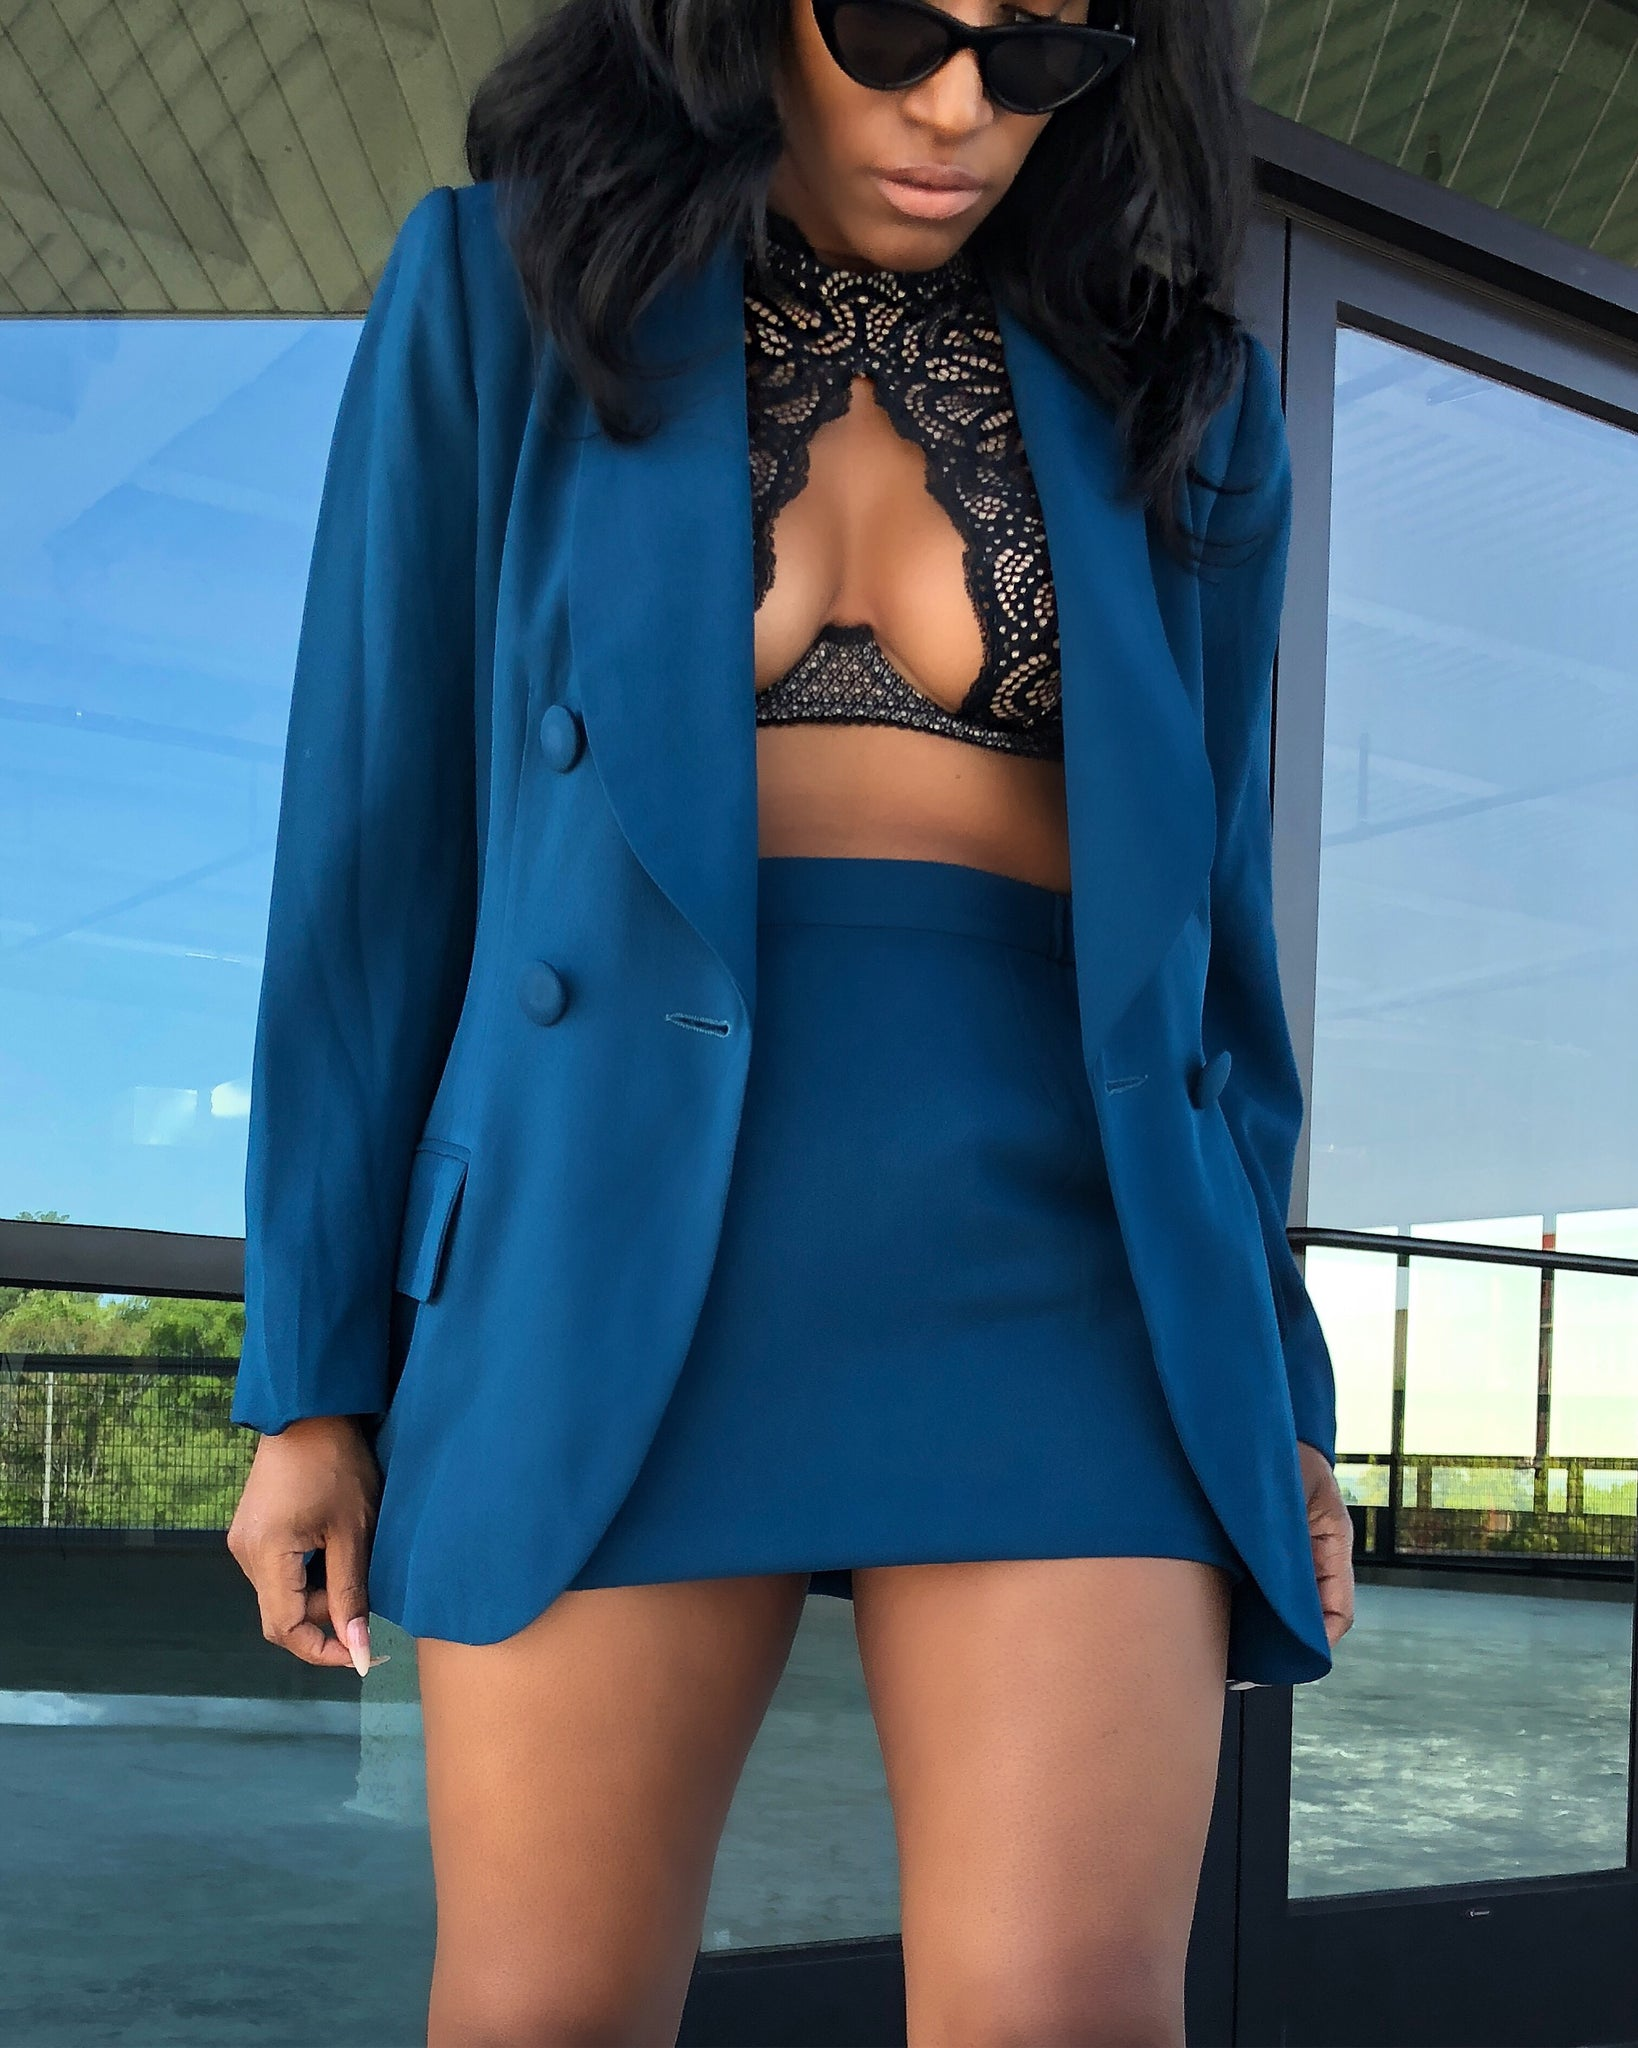 Azure Blue Double-Breasted Skirt Suit